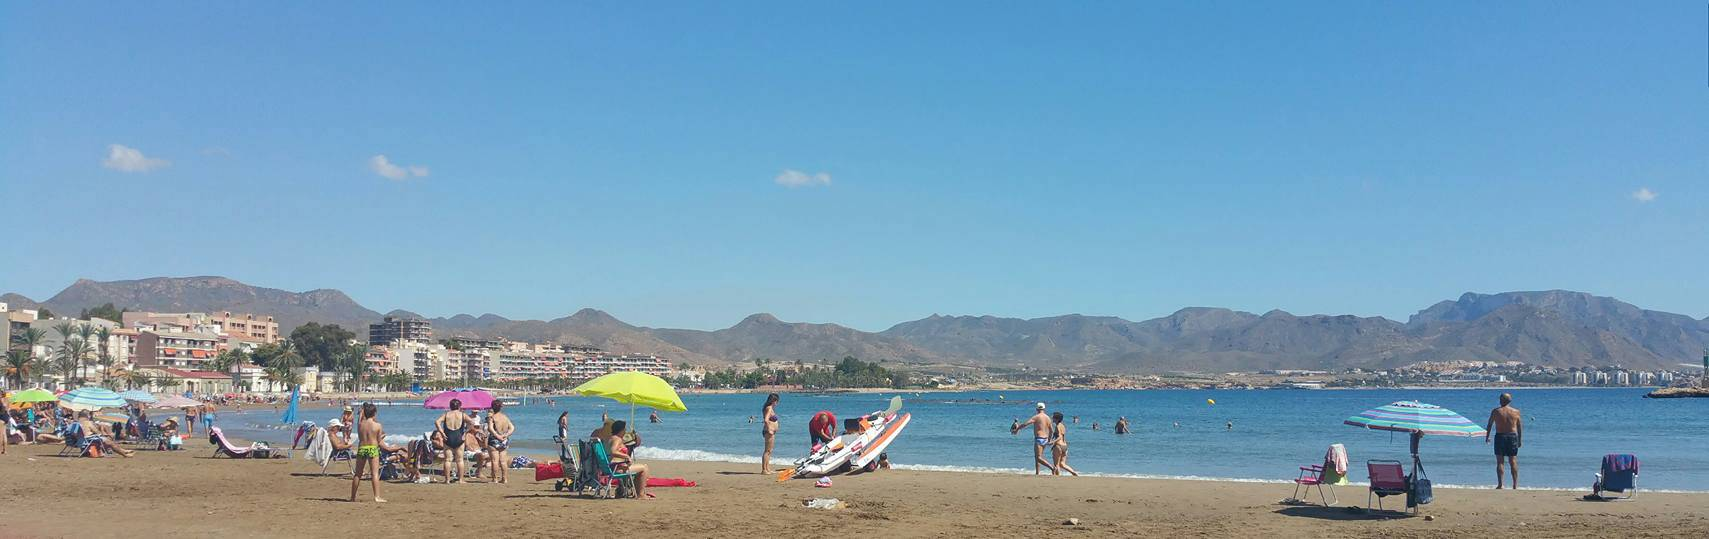 Puerto de Mazarron beach in September